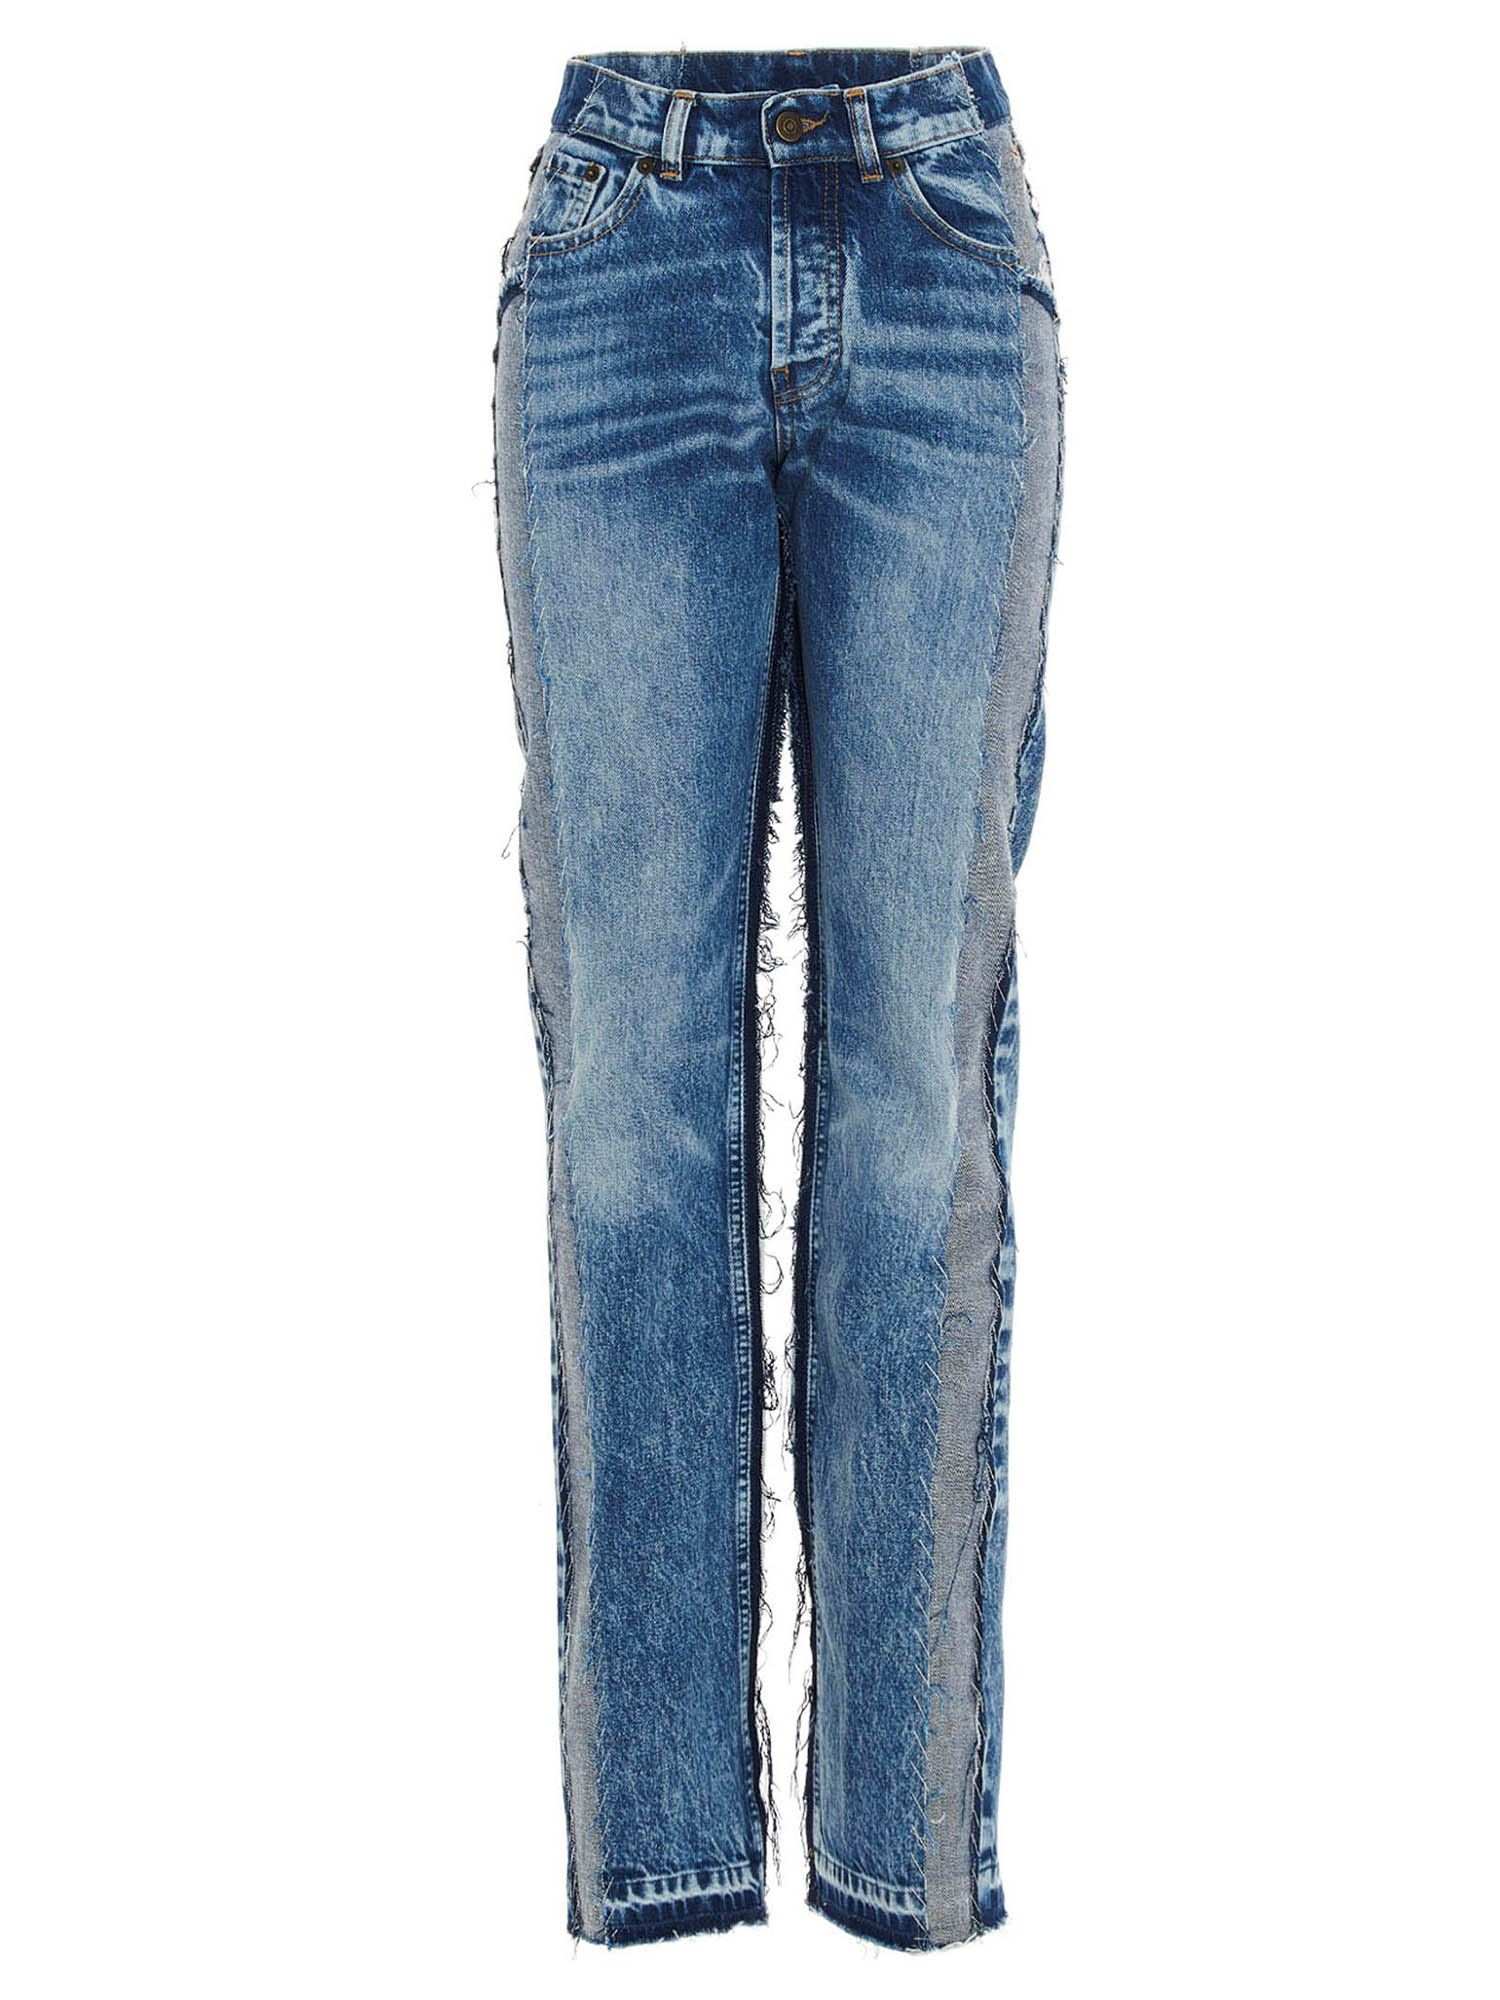 Maison Margiela RECYCLED PATCHWORK JEANS IN BLUE